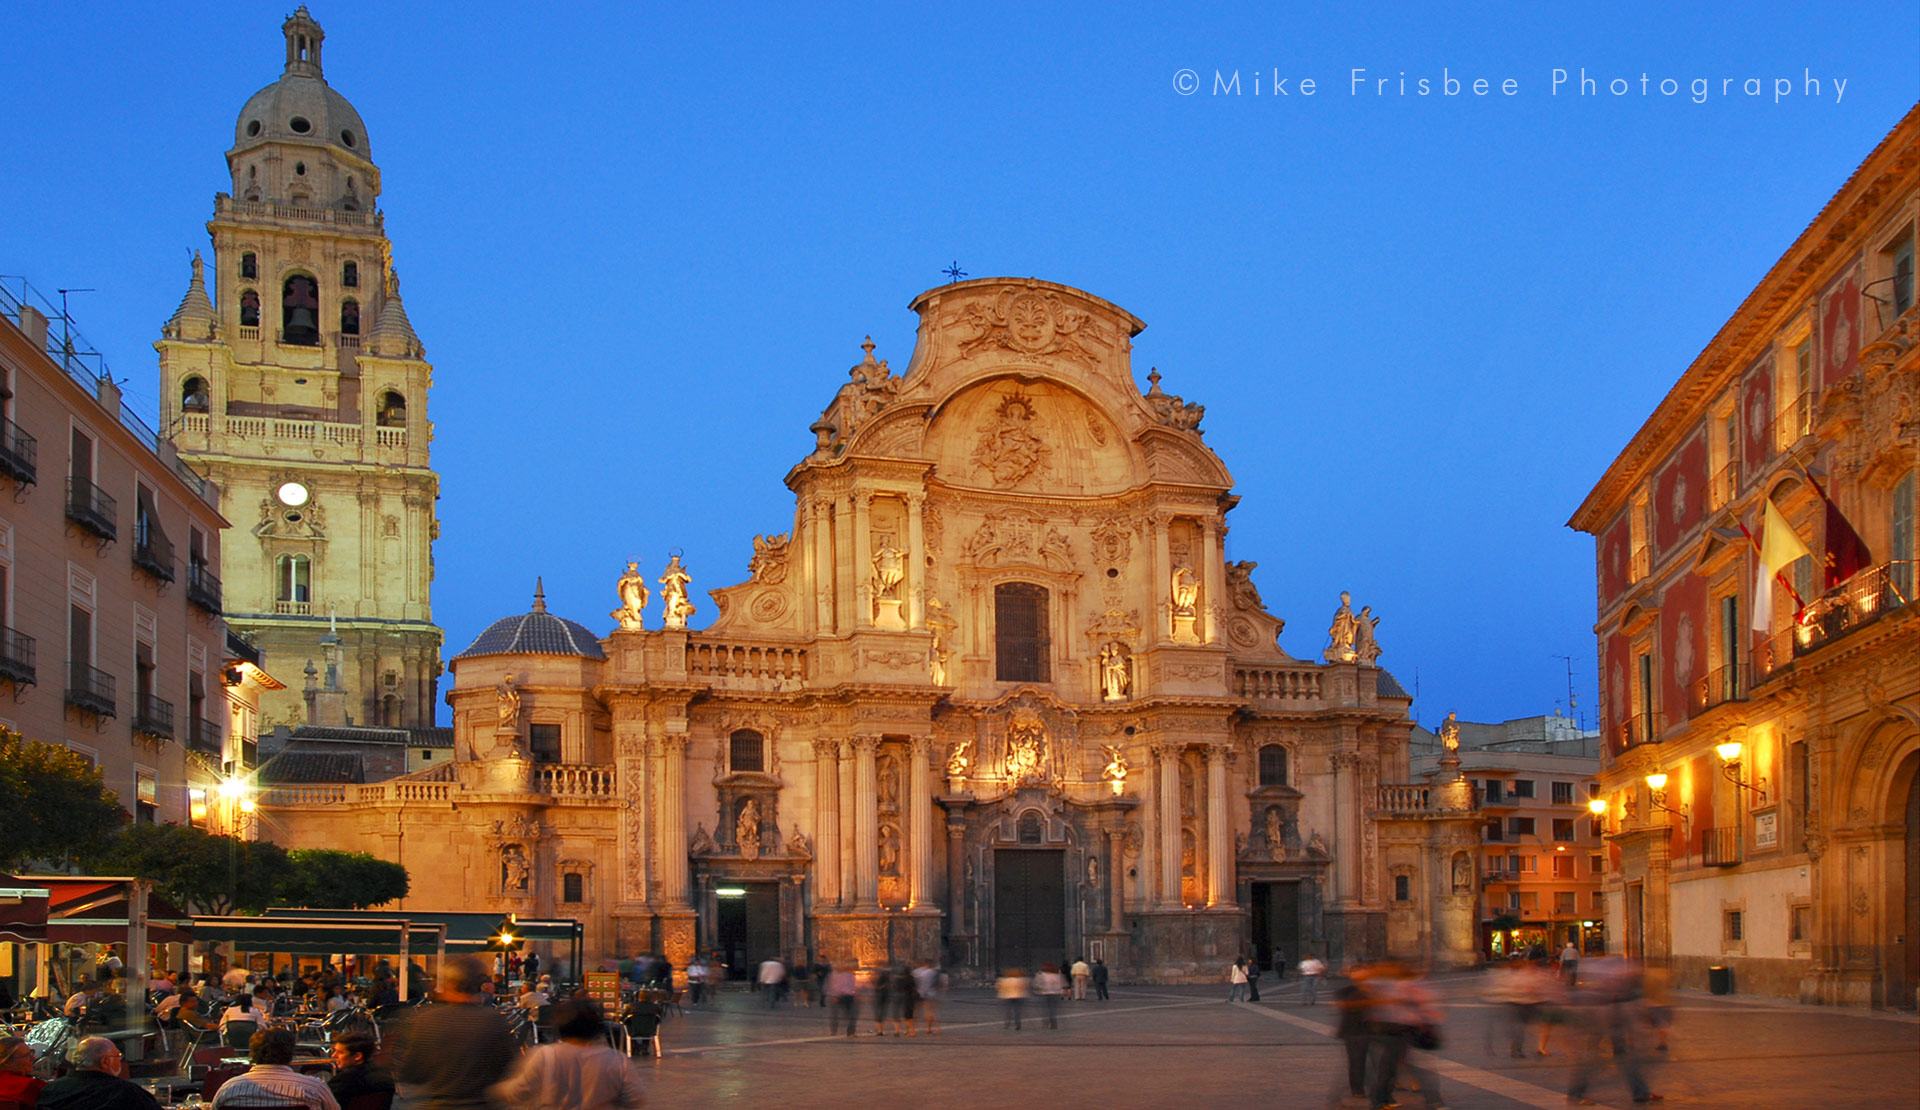 The Cathedral Church of Saint Mary in Murcia (Spanish: Iglesia Catedral de Santa María en Murcia), commonly called the Cathedral of Murcia.